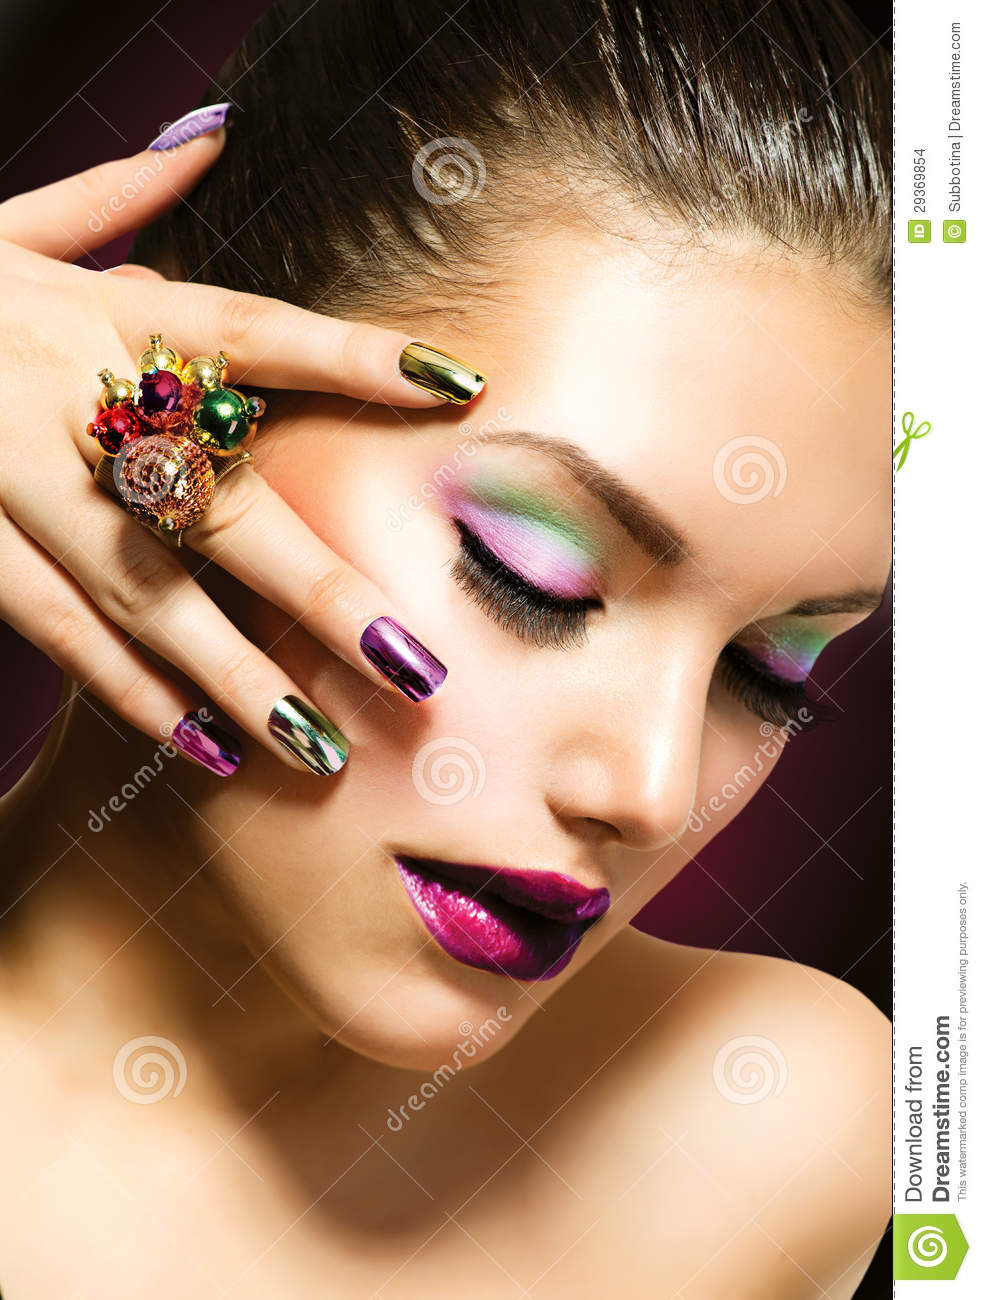 Fashion Beauty Manicure And Makeup Stock Photo Image 29369854